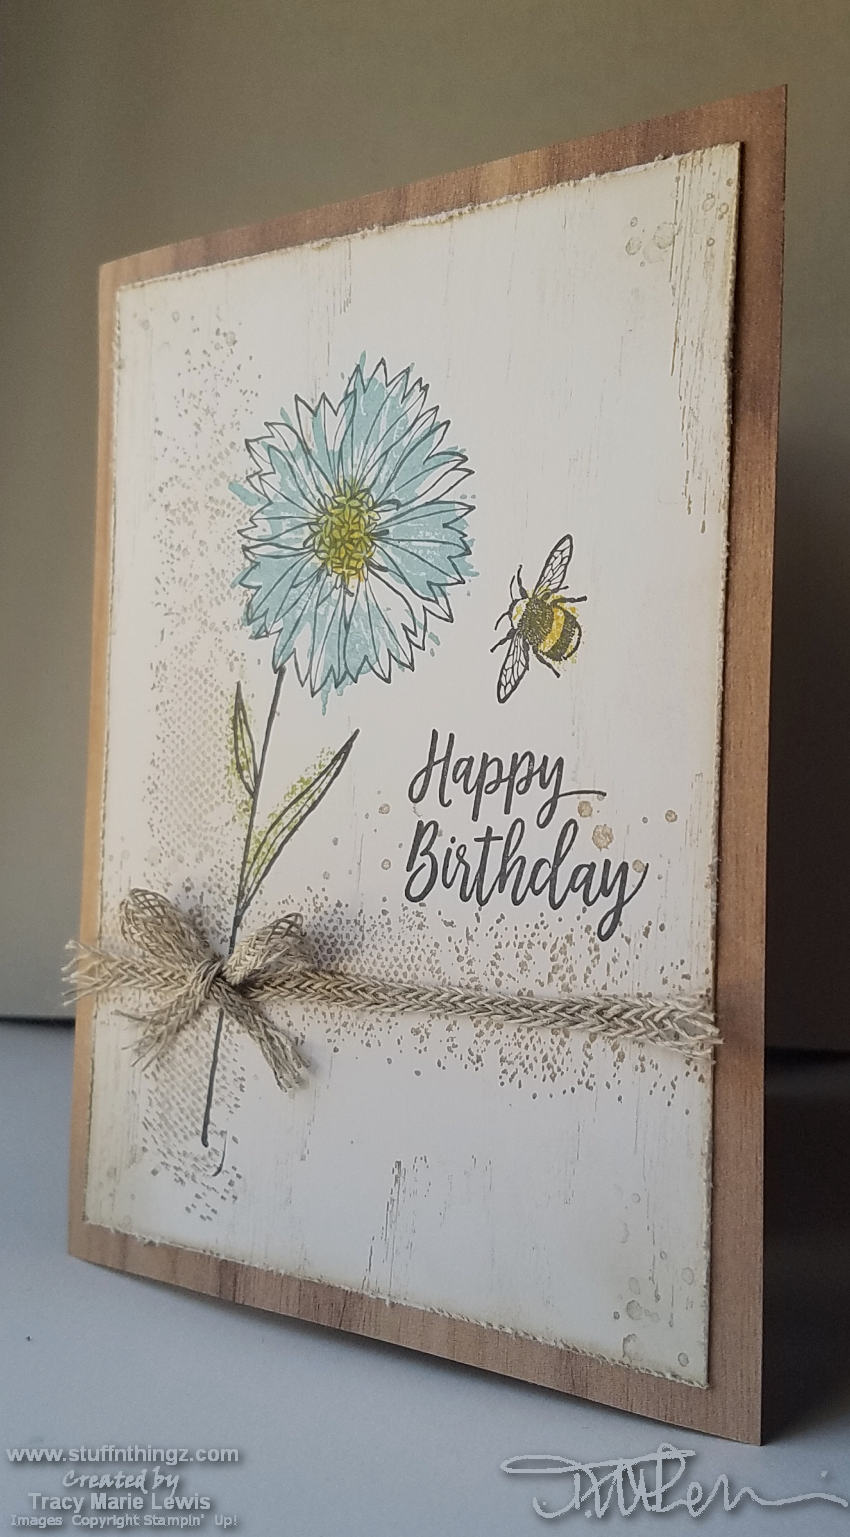 May 2019 Kreators Blog Hop - Casual Crafter | Tracy Marie Lewis | www.stuffnthingz.com